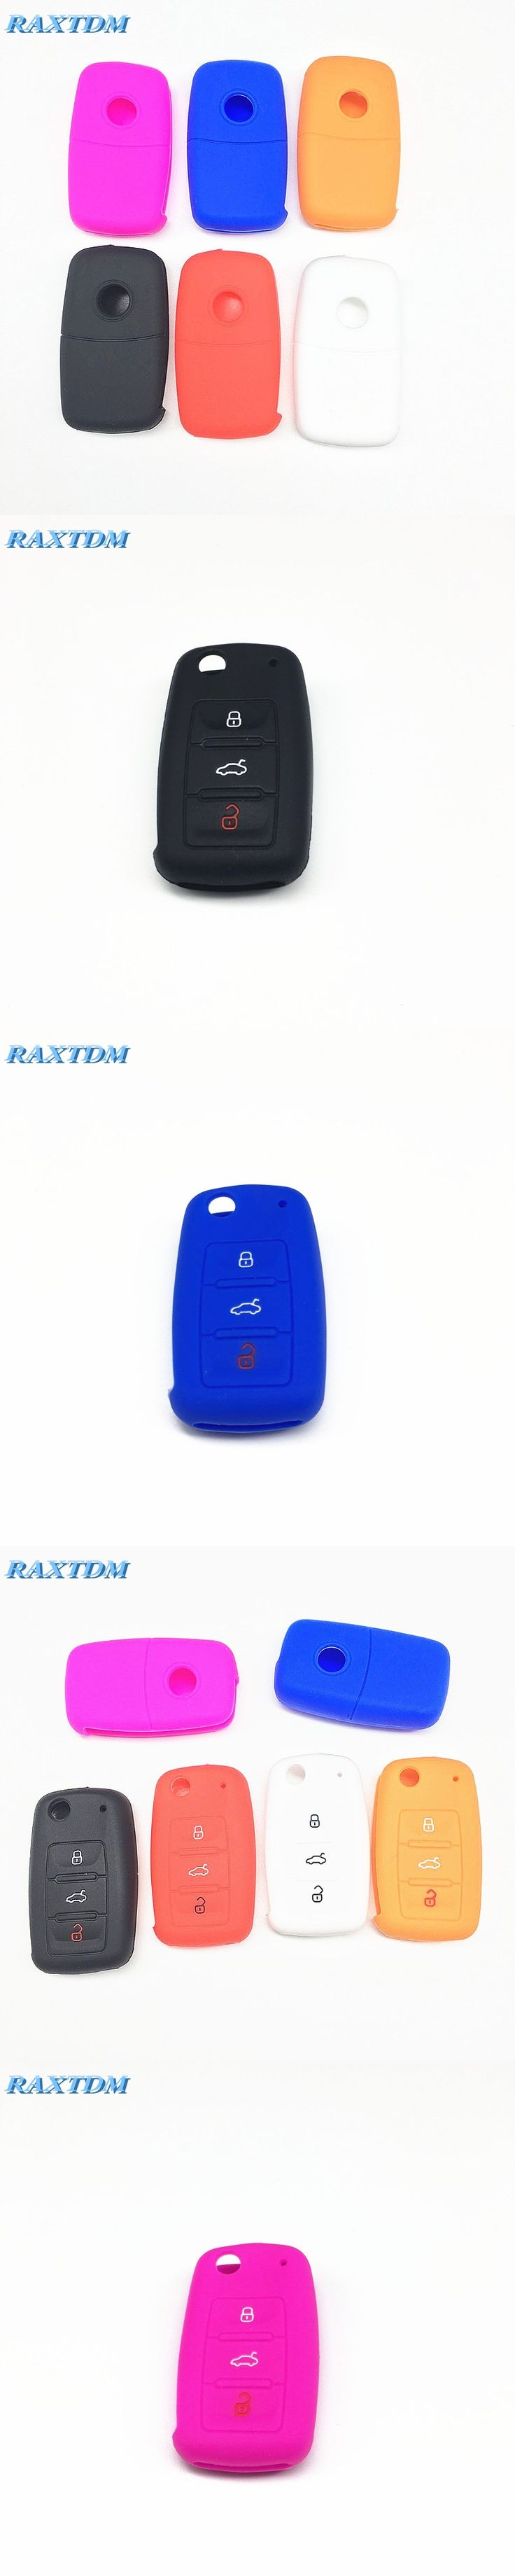 Silicone Car Key Cover Case Shell Fob For VW Golf Bora Jetta POLO Passat Skoda Superb Octavia Fabia SEAT Ibiza Leon,car Styling